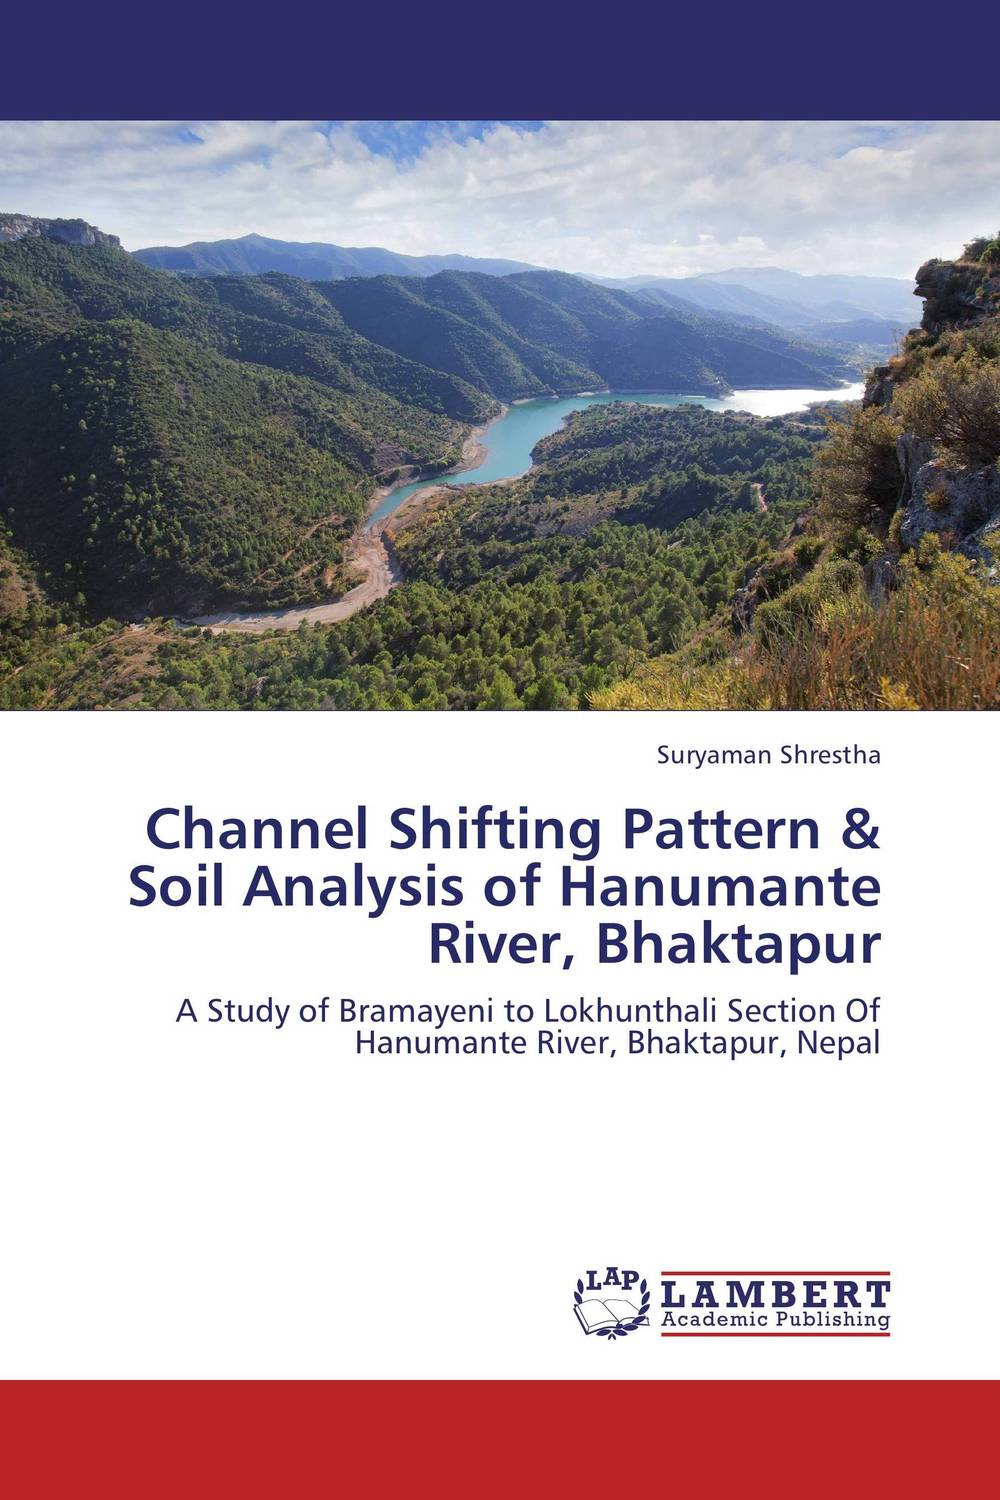 Channel Shifting Pattern & Soil Analysis of Hanumante River, Bhaktapur found in brooklyn